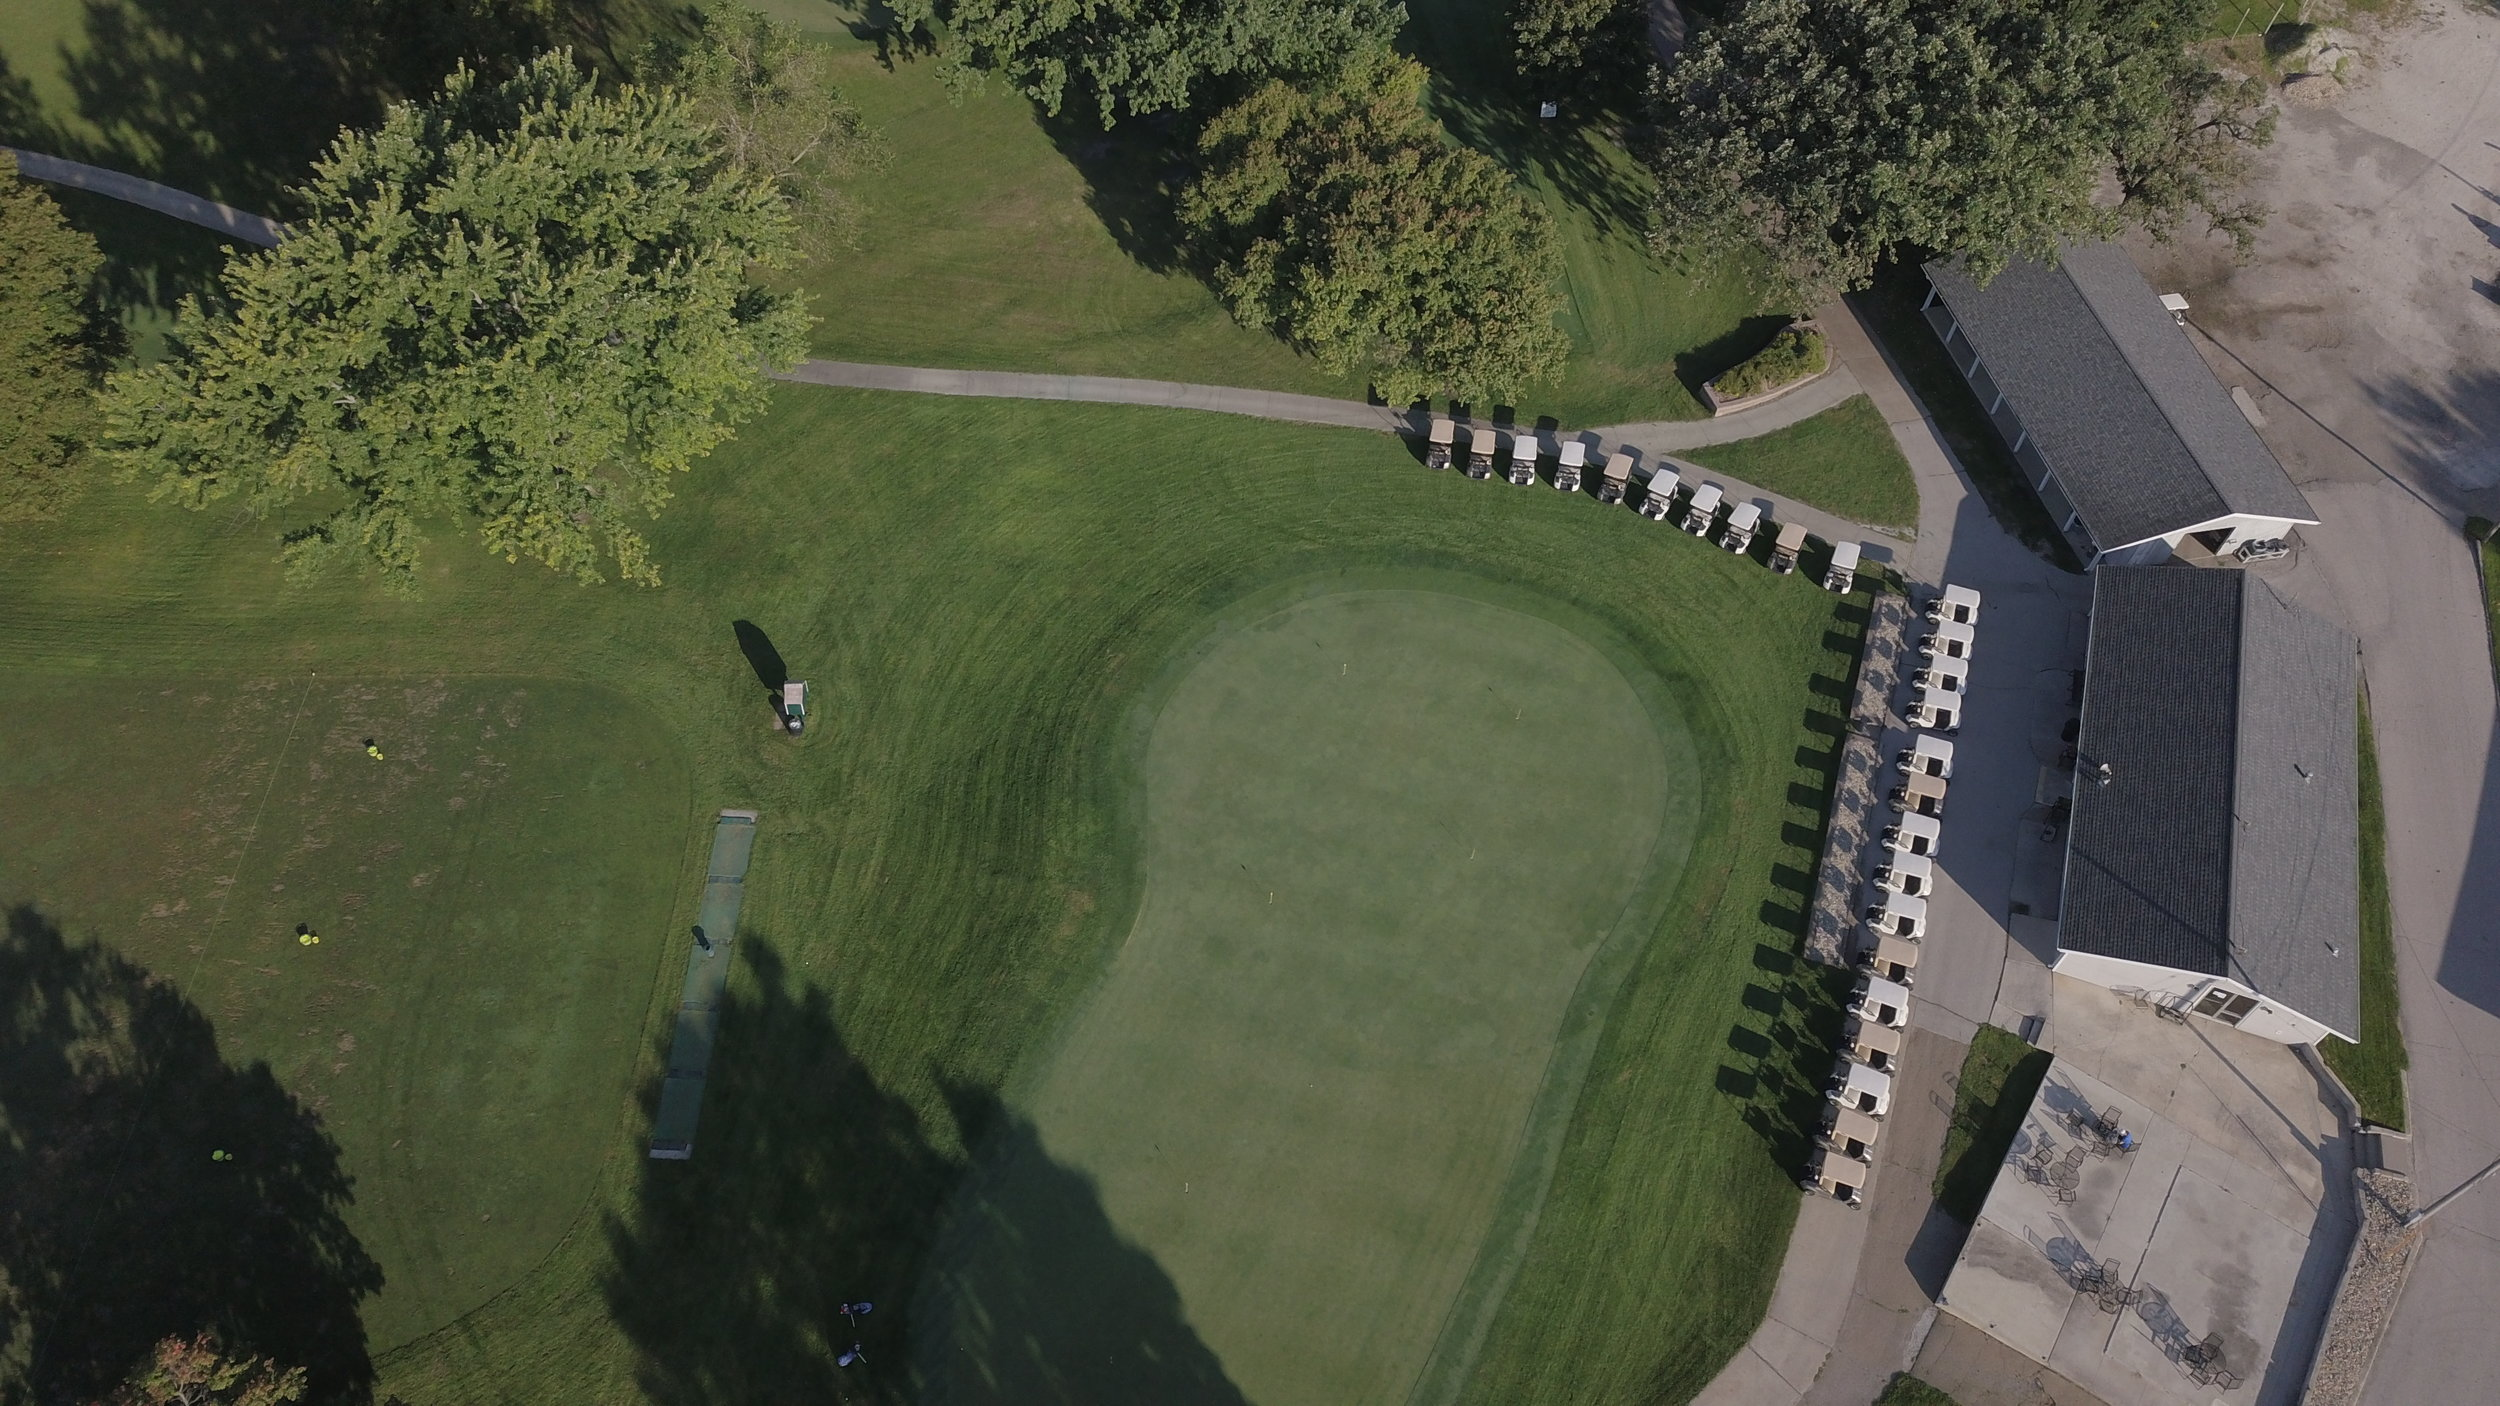 Fall Promotion - Buy an 18 or 9 hole Green Fee and receive a free cart.Single Trial Membership$350 for unlimited golf, cart, range, bag storage, and a discount towards 2019 membership.Family Trial Membership$500 for unlimited golf, cart range, bag storage, and a discount towards 2019 membership.Call the Golf Shop at (515) 955-8551 to set up a tee time!